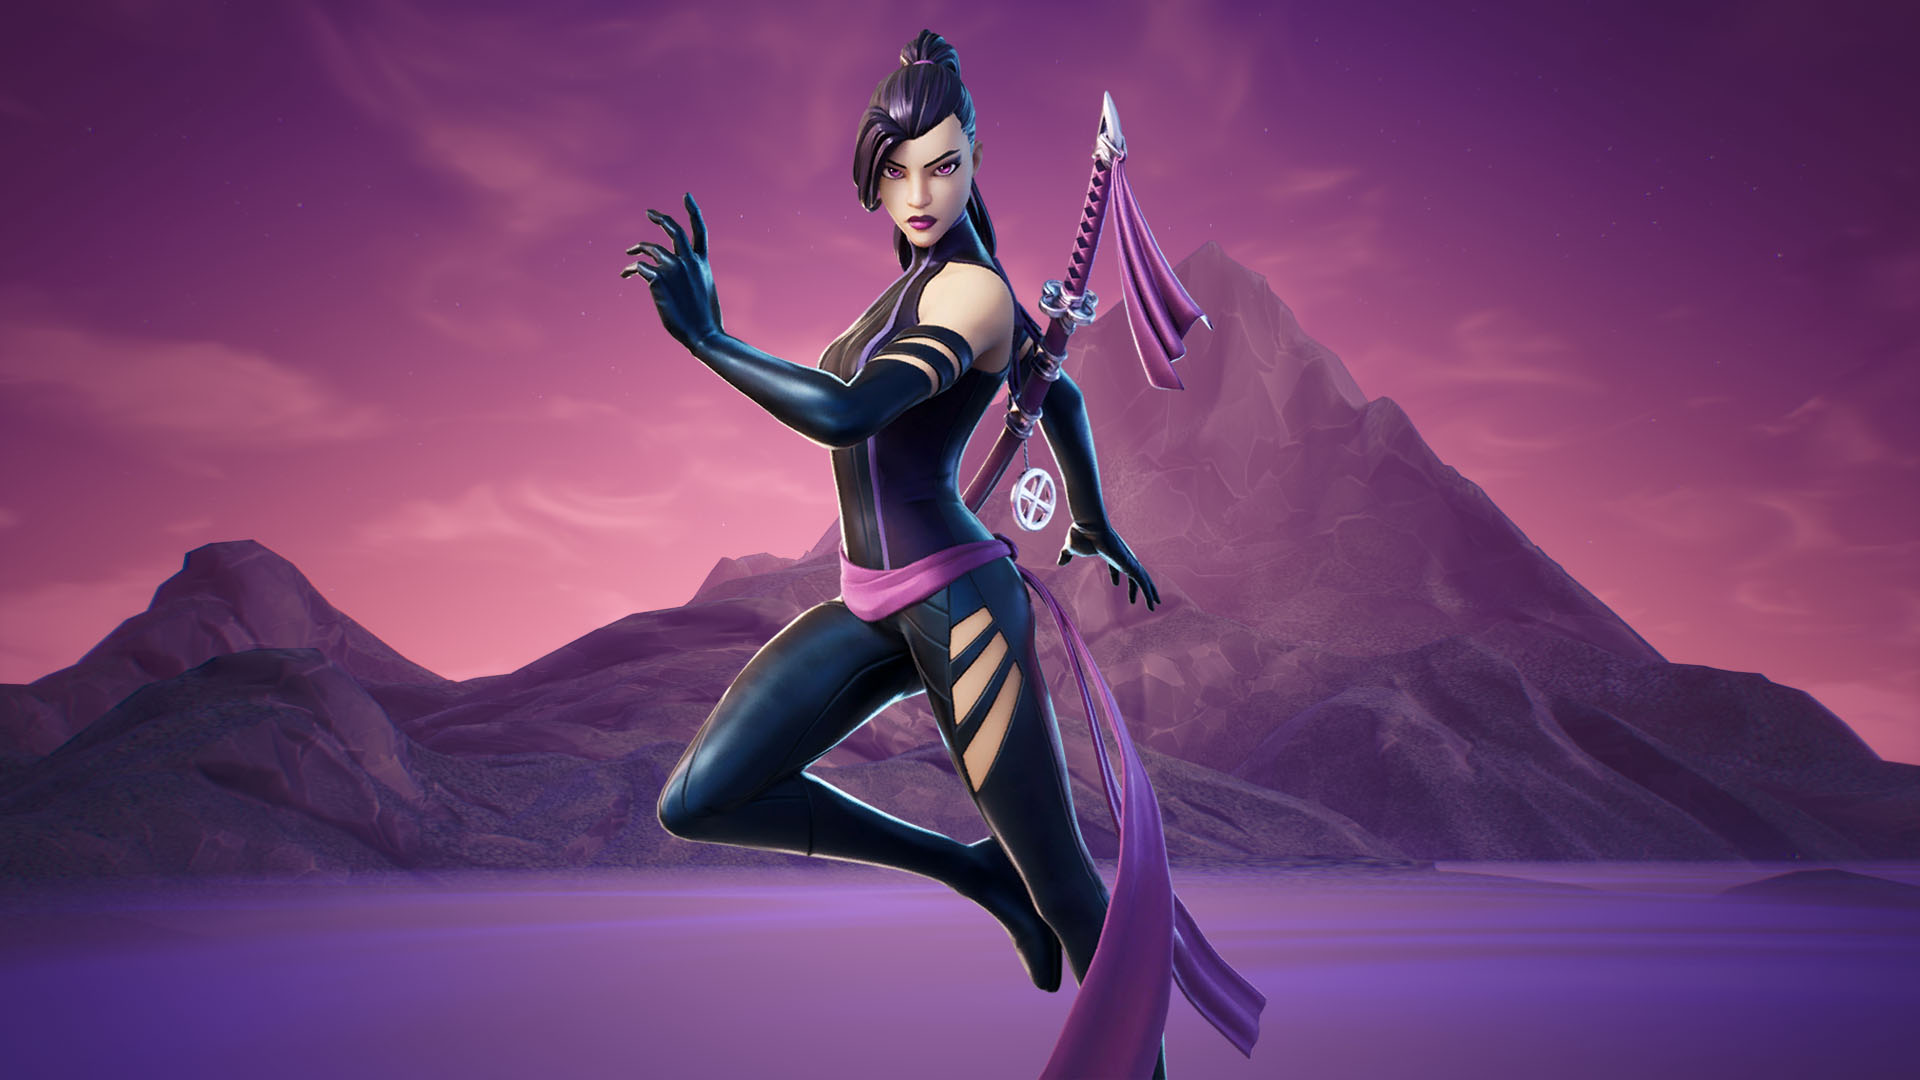 Psylocke Fortnite Wallpapers All Details About The New X Force Fortnite Skin Mega Themes